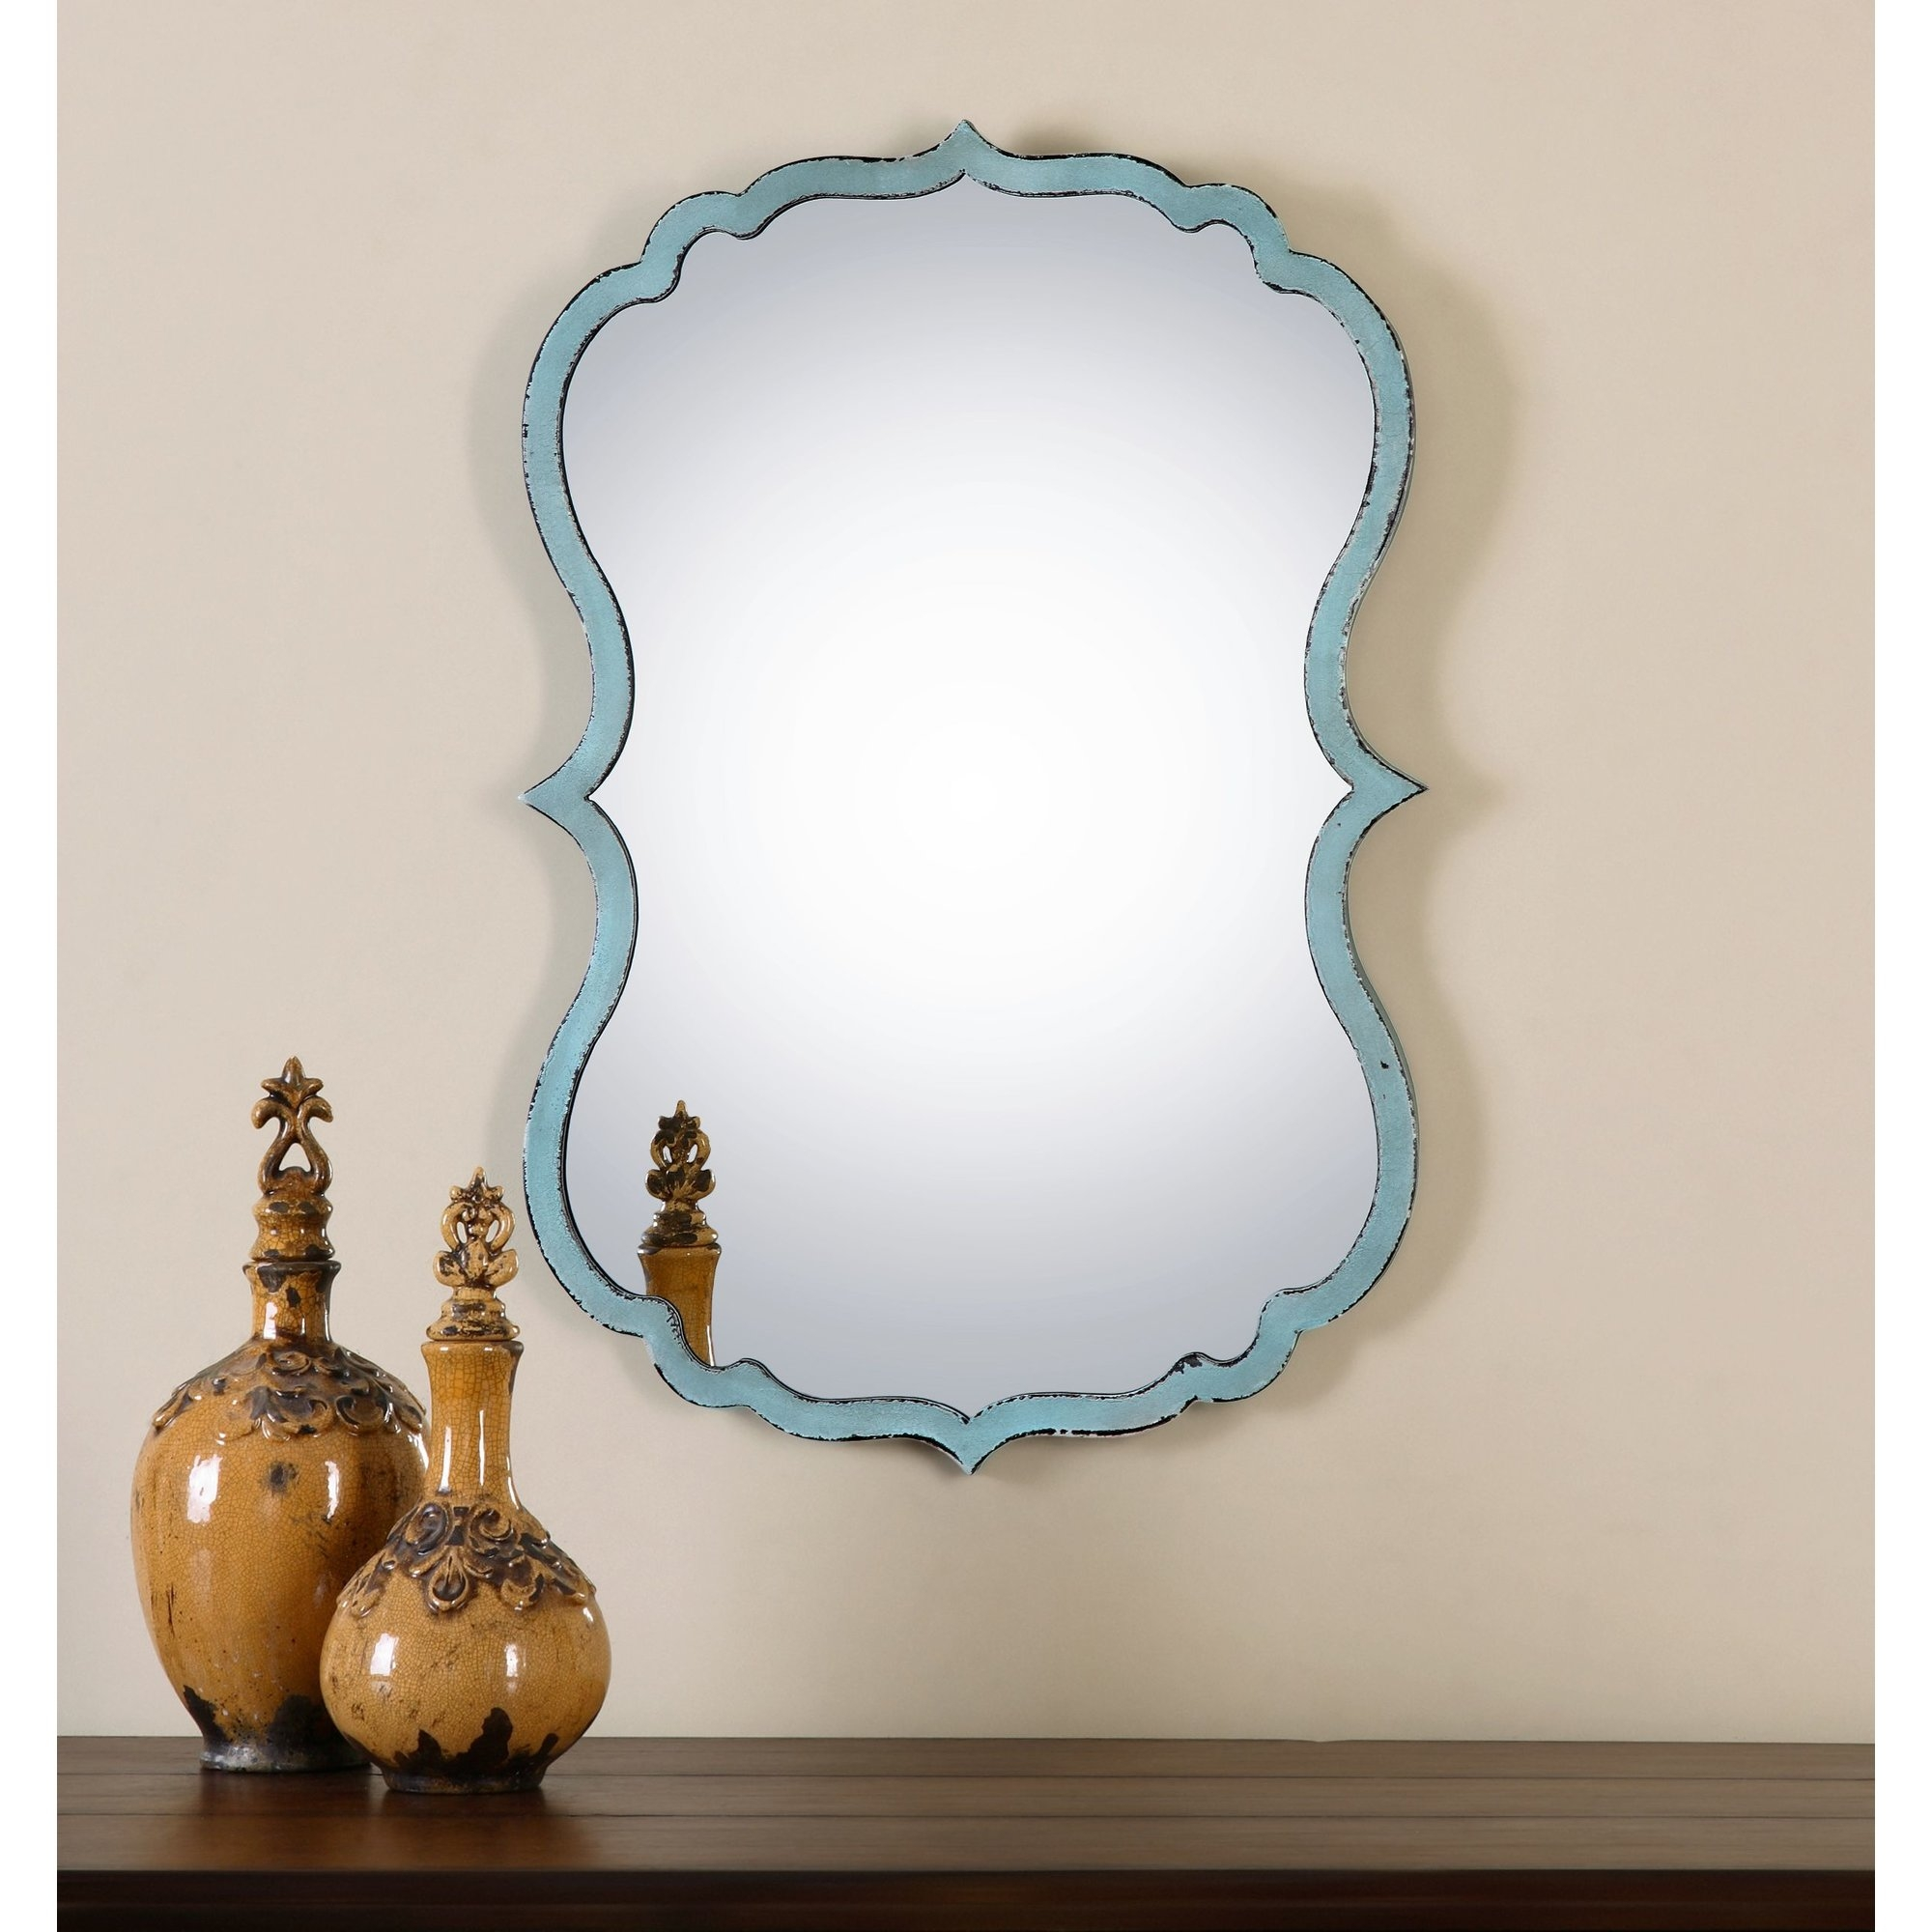 Antiqued Light Blue Wall Mirror Reviews Allmodern In Antiqued Wall Mirror (Image 3 of 15)